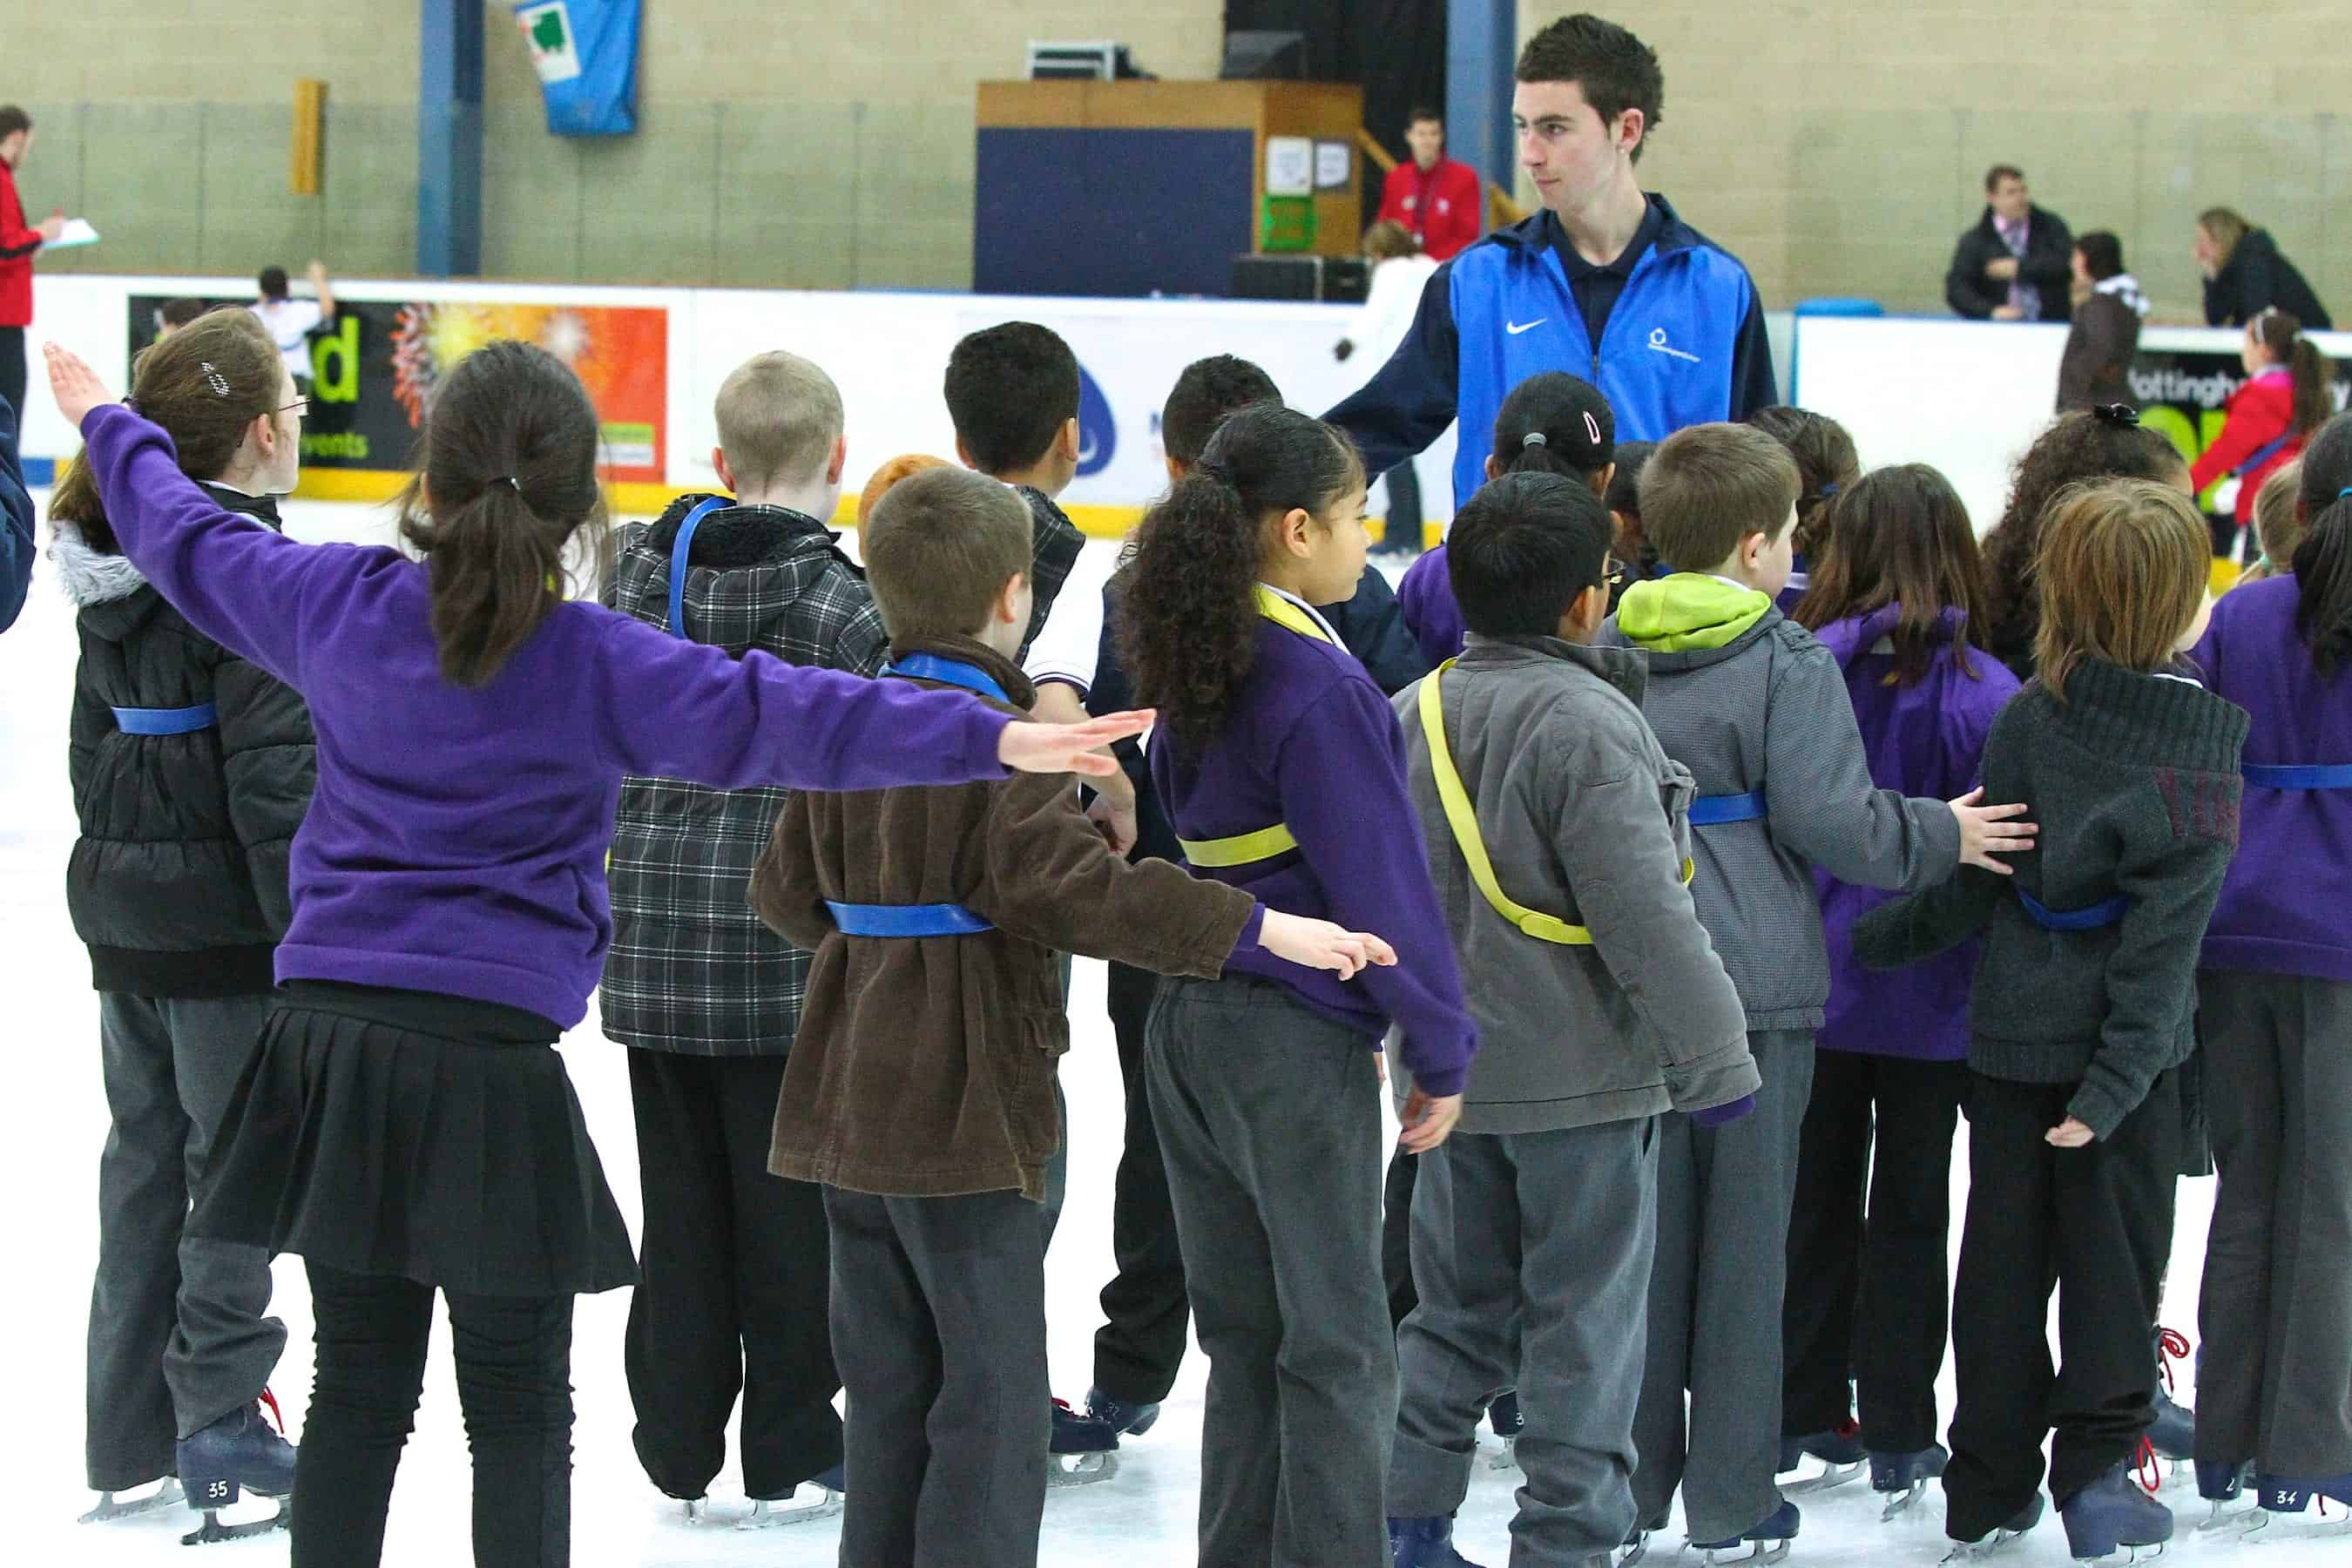 Schools Ice Skating at the National Ice Centre